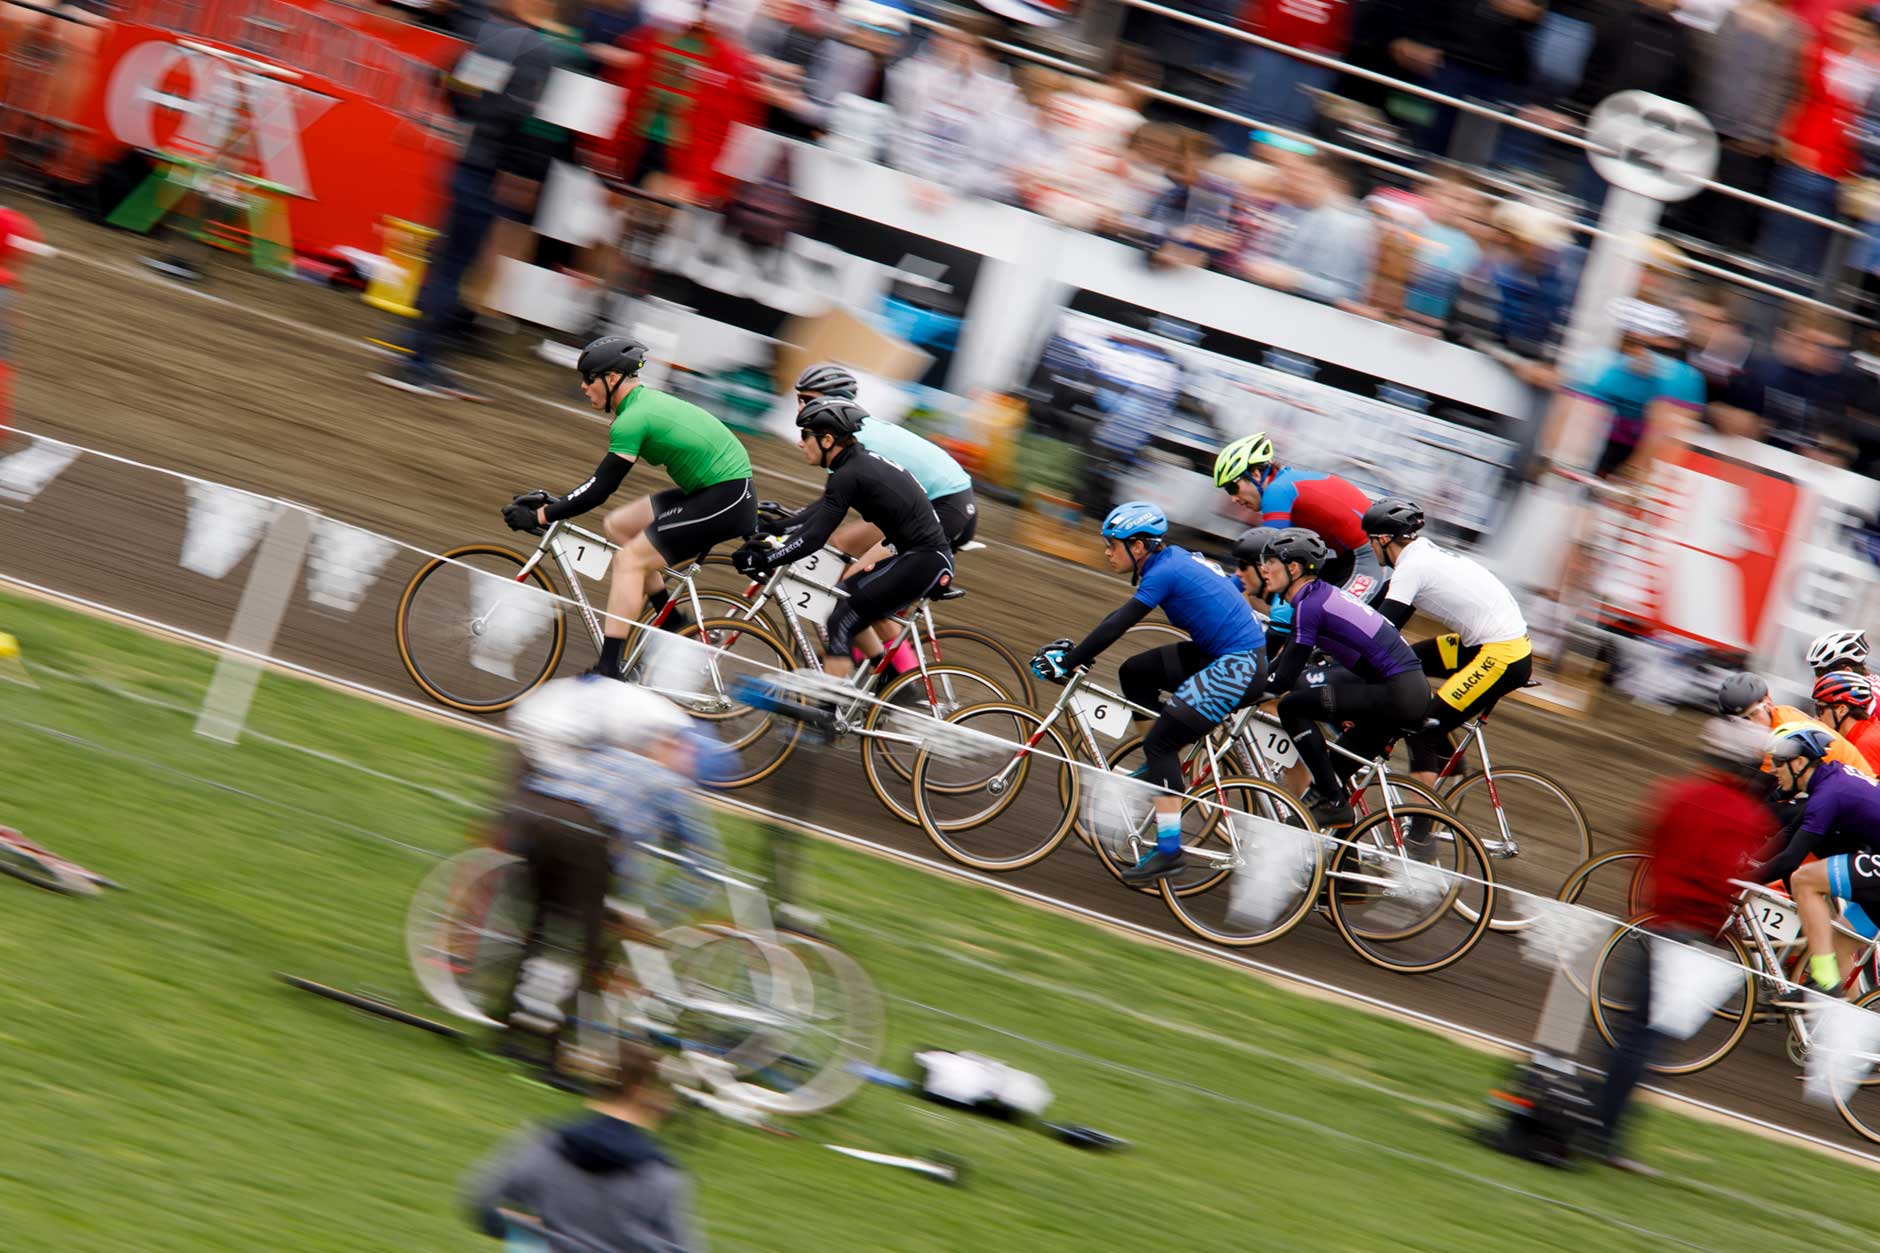 Riders race down the backstretch during the early laps of the Men's Little 500 at Bill Armstrong Stadium on Saturday, April 22, 2017. (James Brosher/IU Communications)